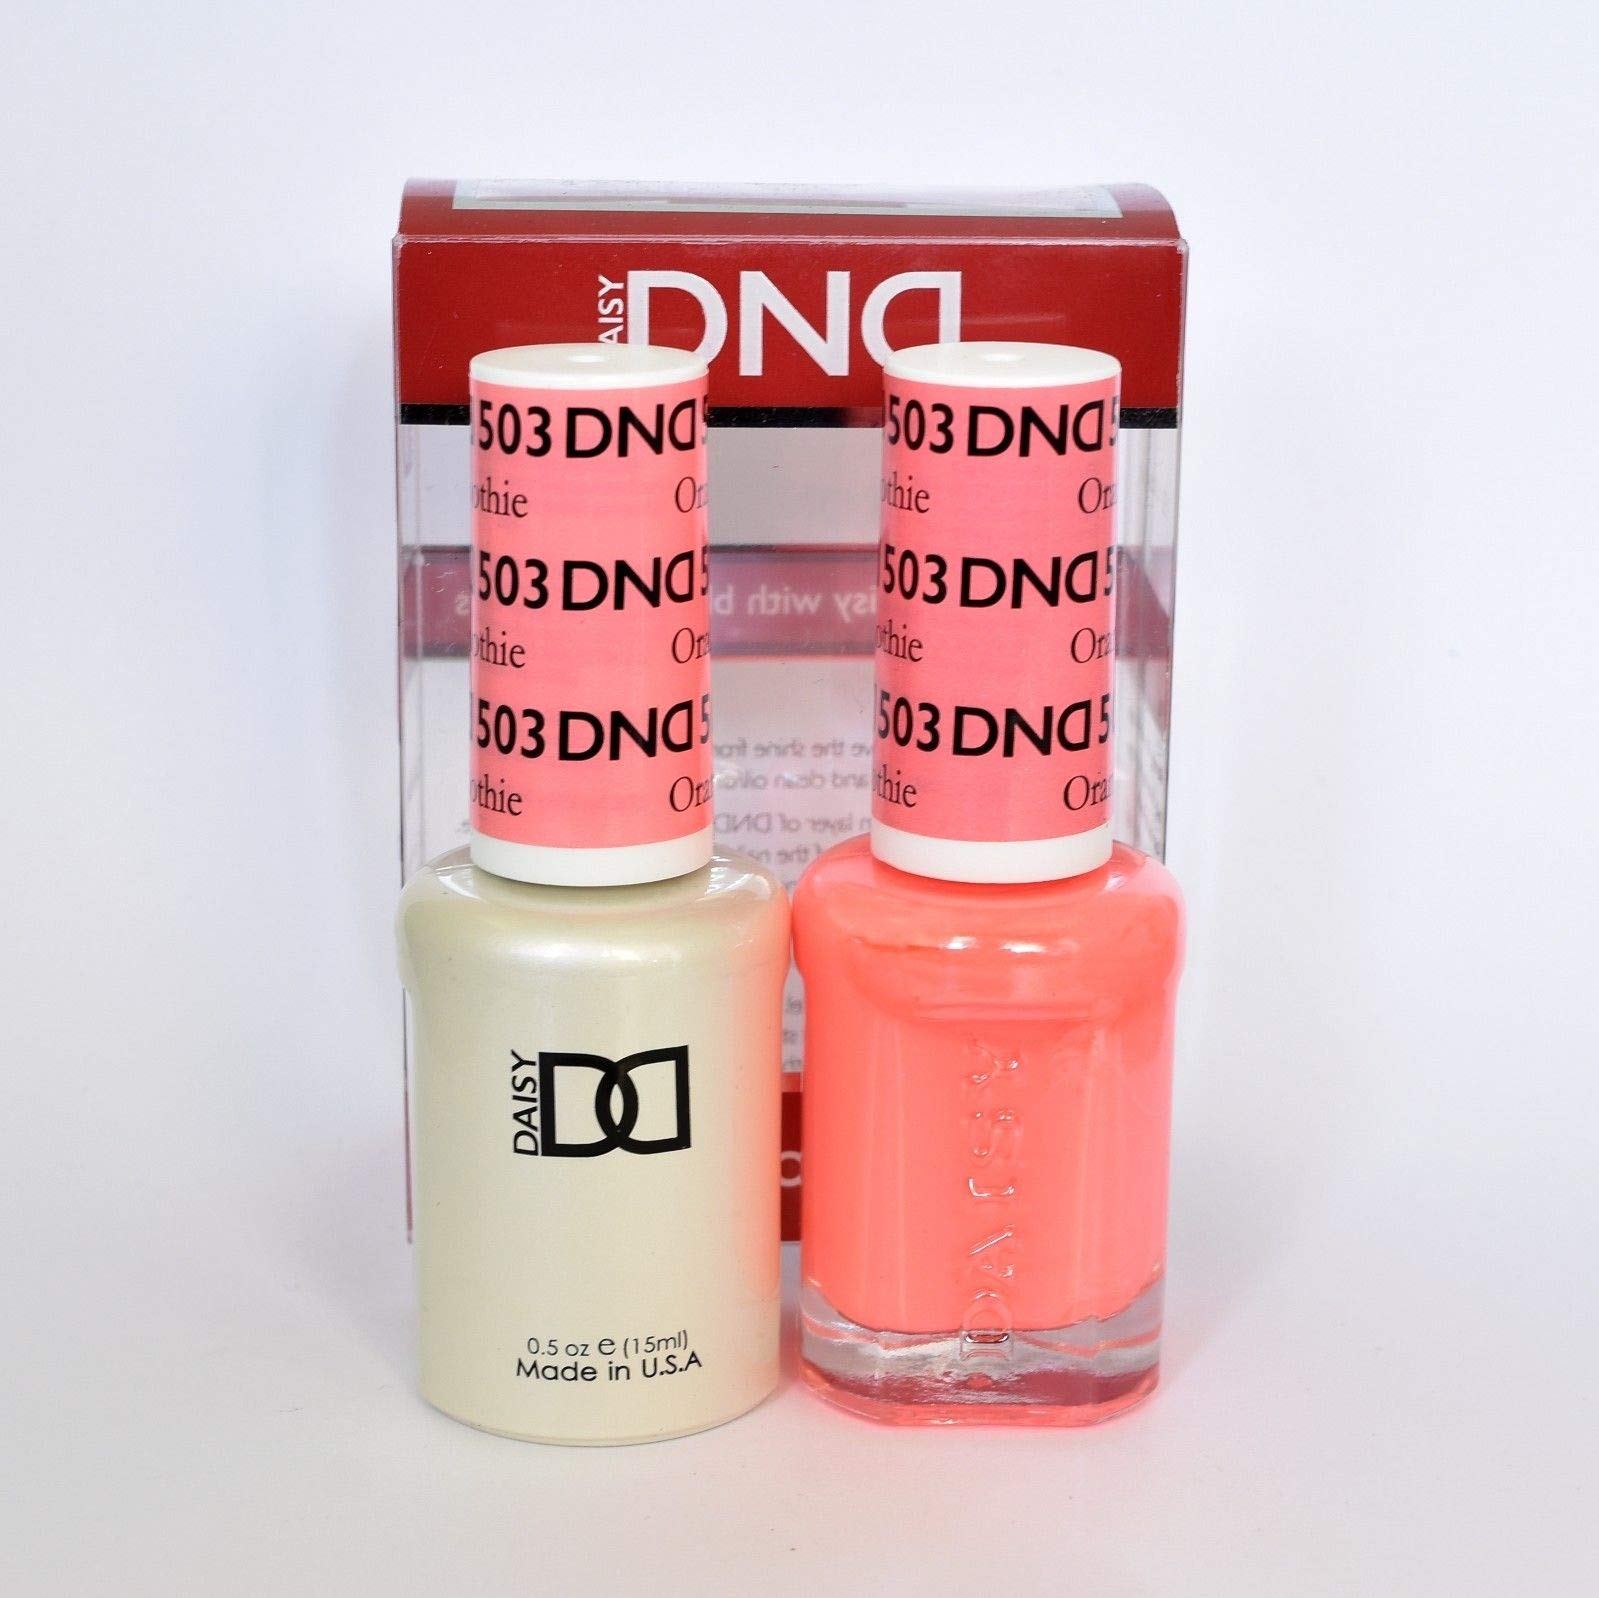 Amazon.com : DND *Duo Gel* (Gel & Matching Polish) Spring